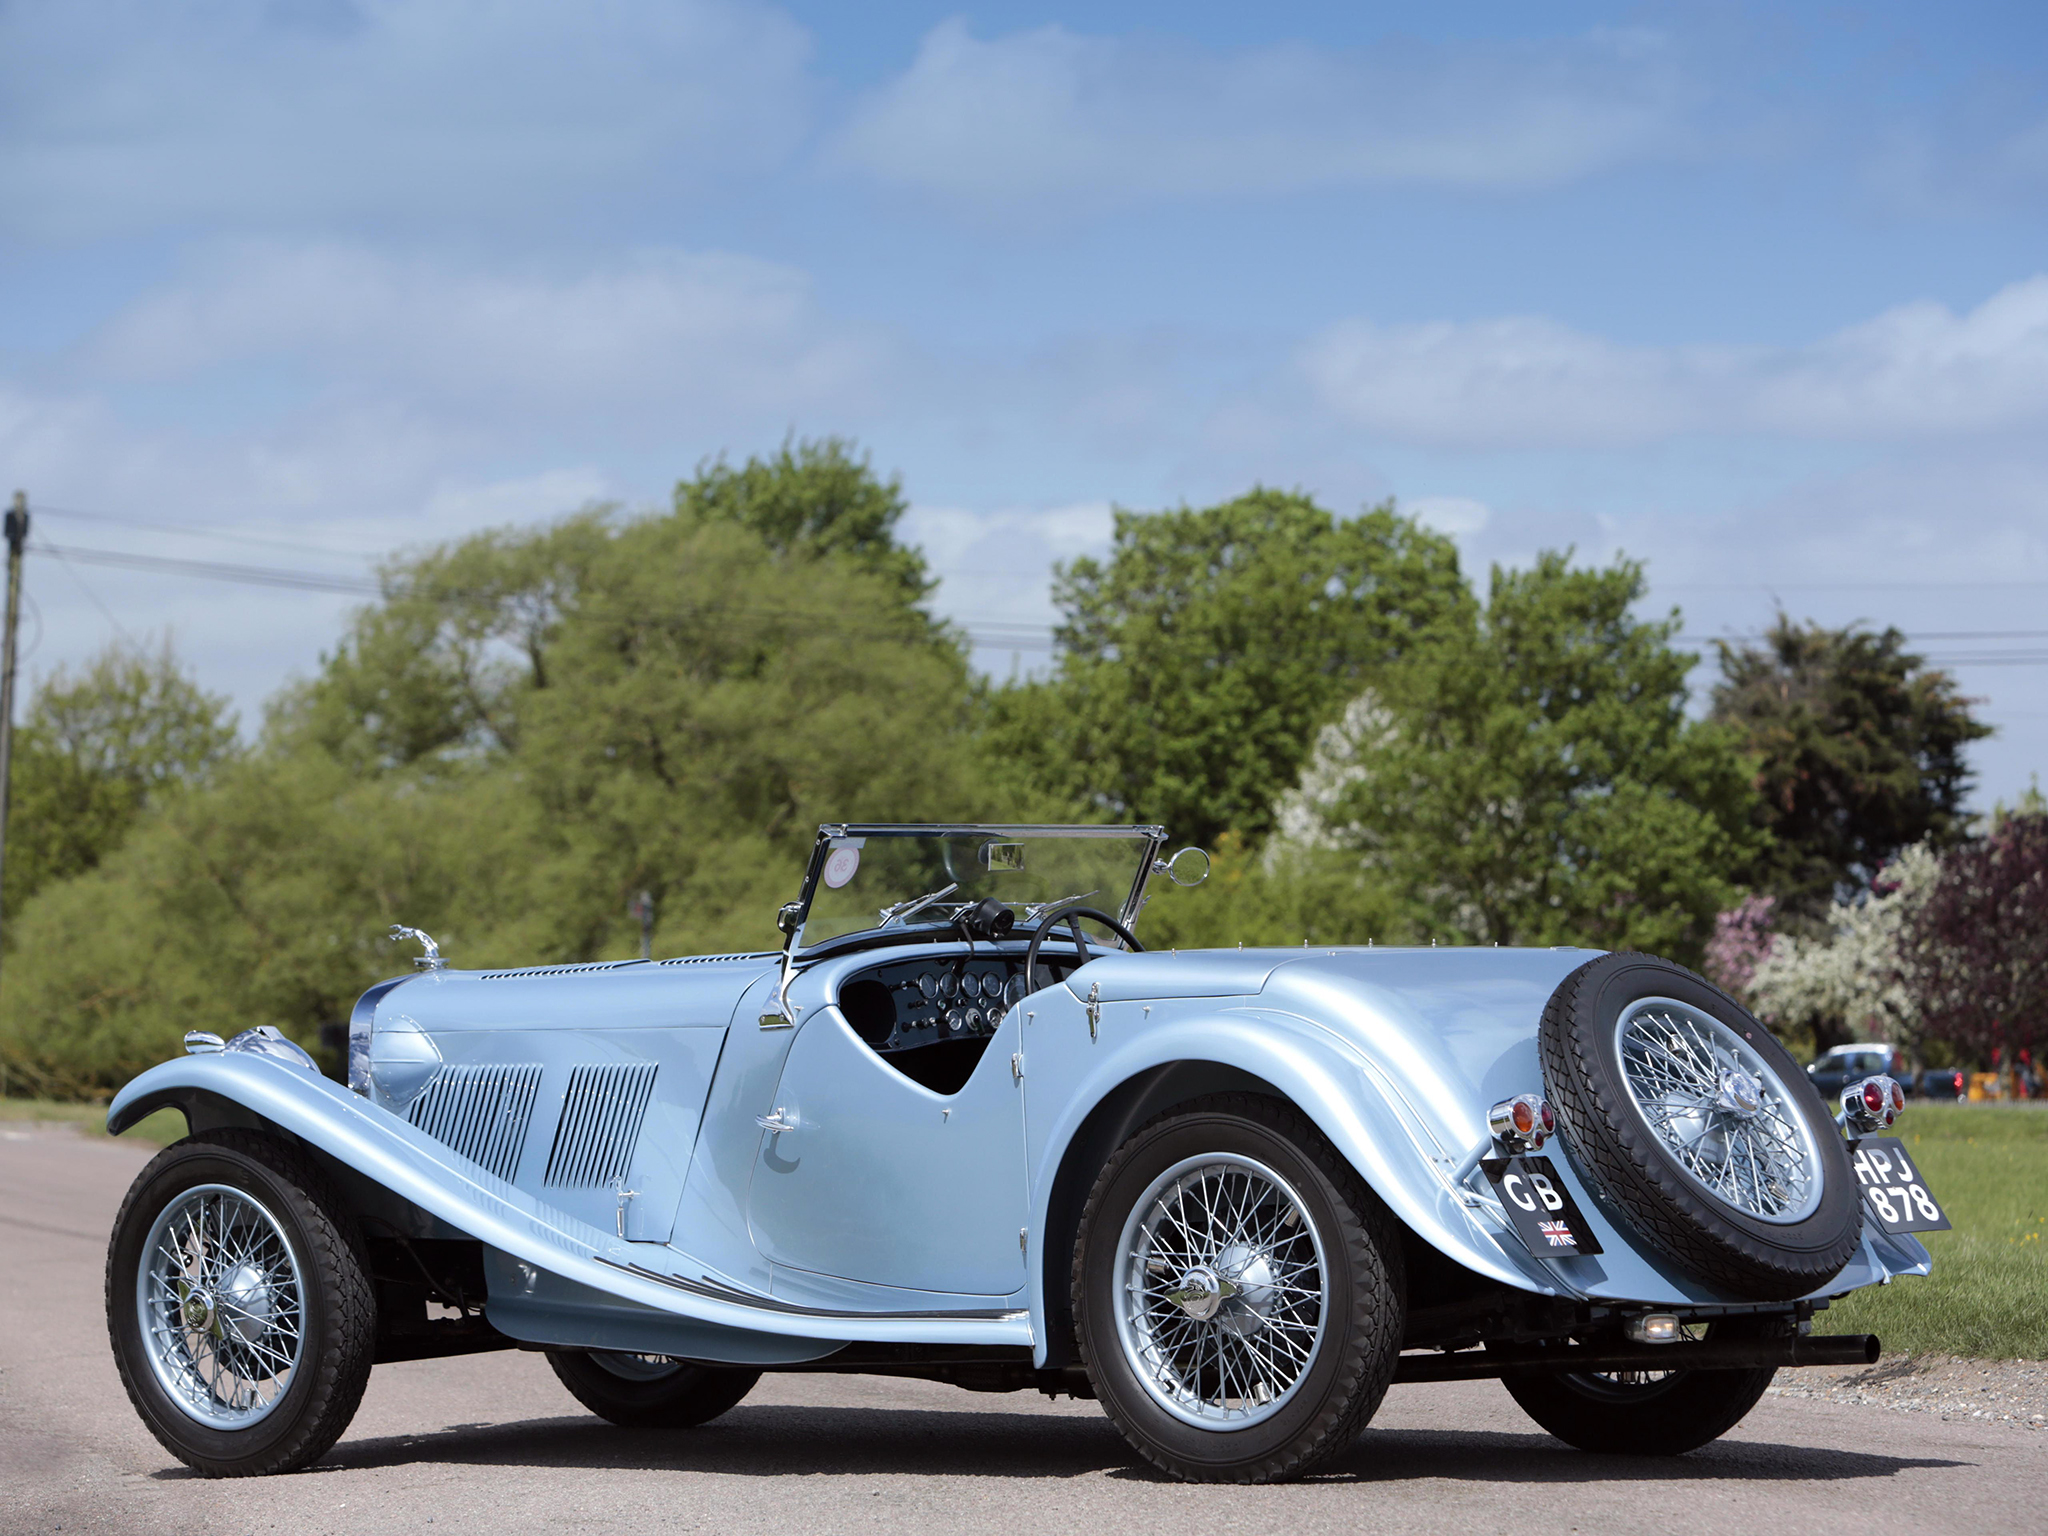 AC-six-16-80-competition-6-drive-my-2014-20 Interesting Tvr Griffith 500 Ignition Timing Cars Trend